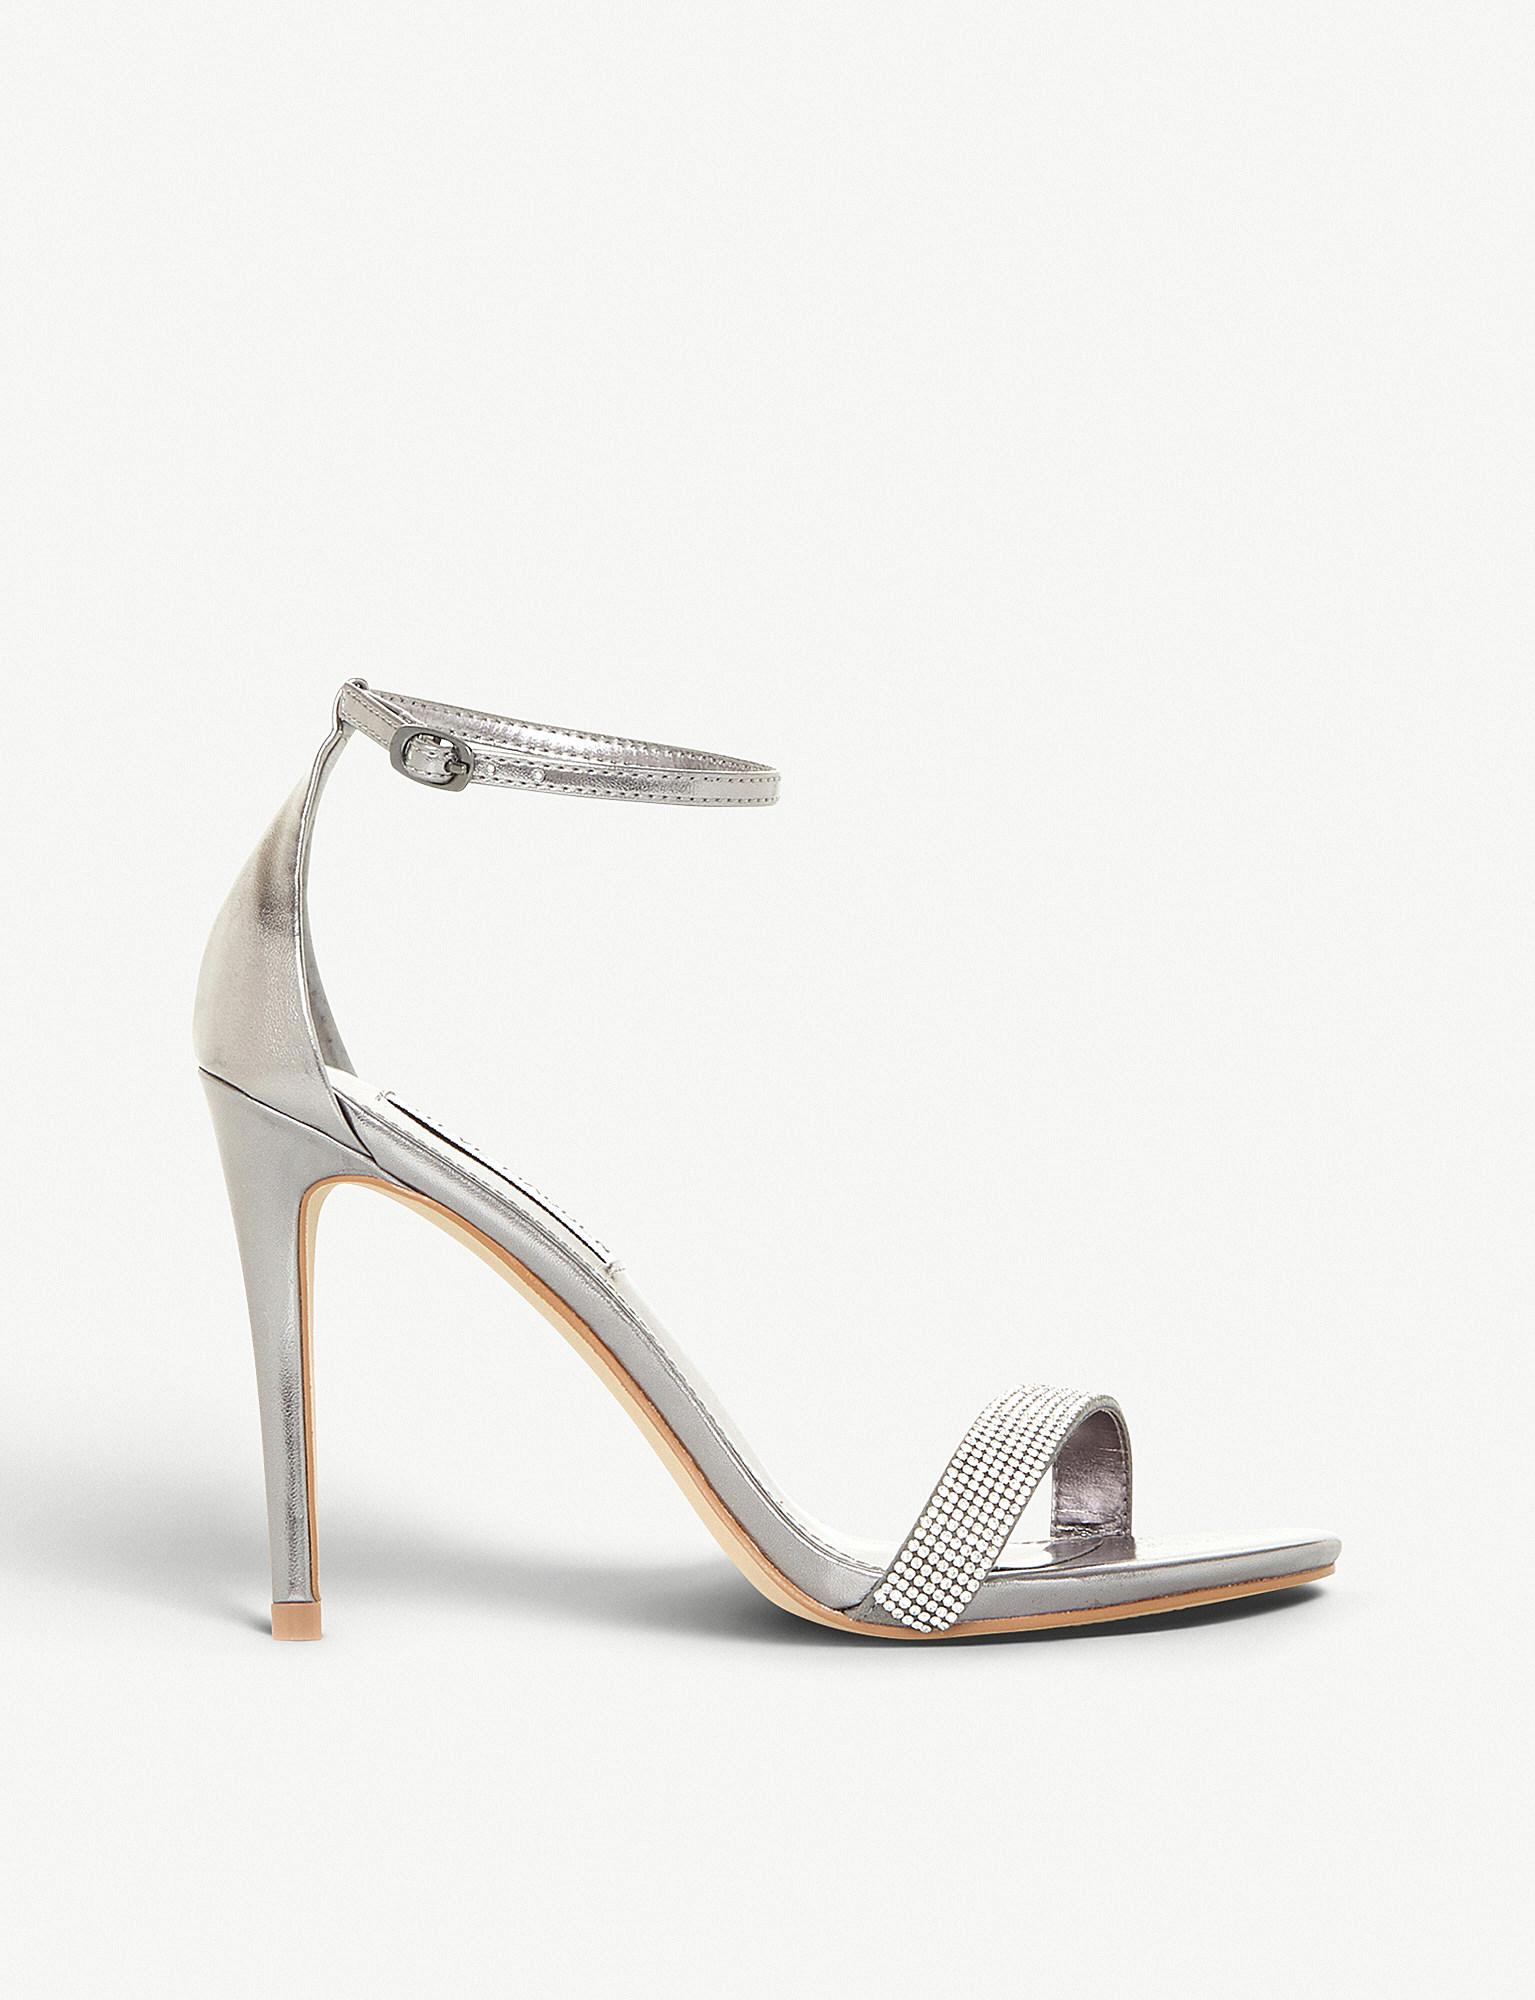 7b34af089cb Steve Madden Stecy Metallic Faux-leather And Diamanté Sandals in ...